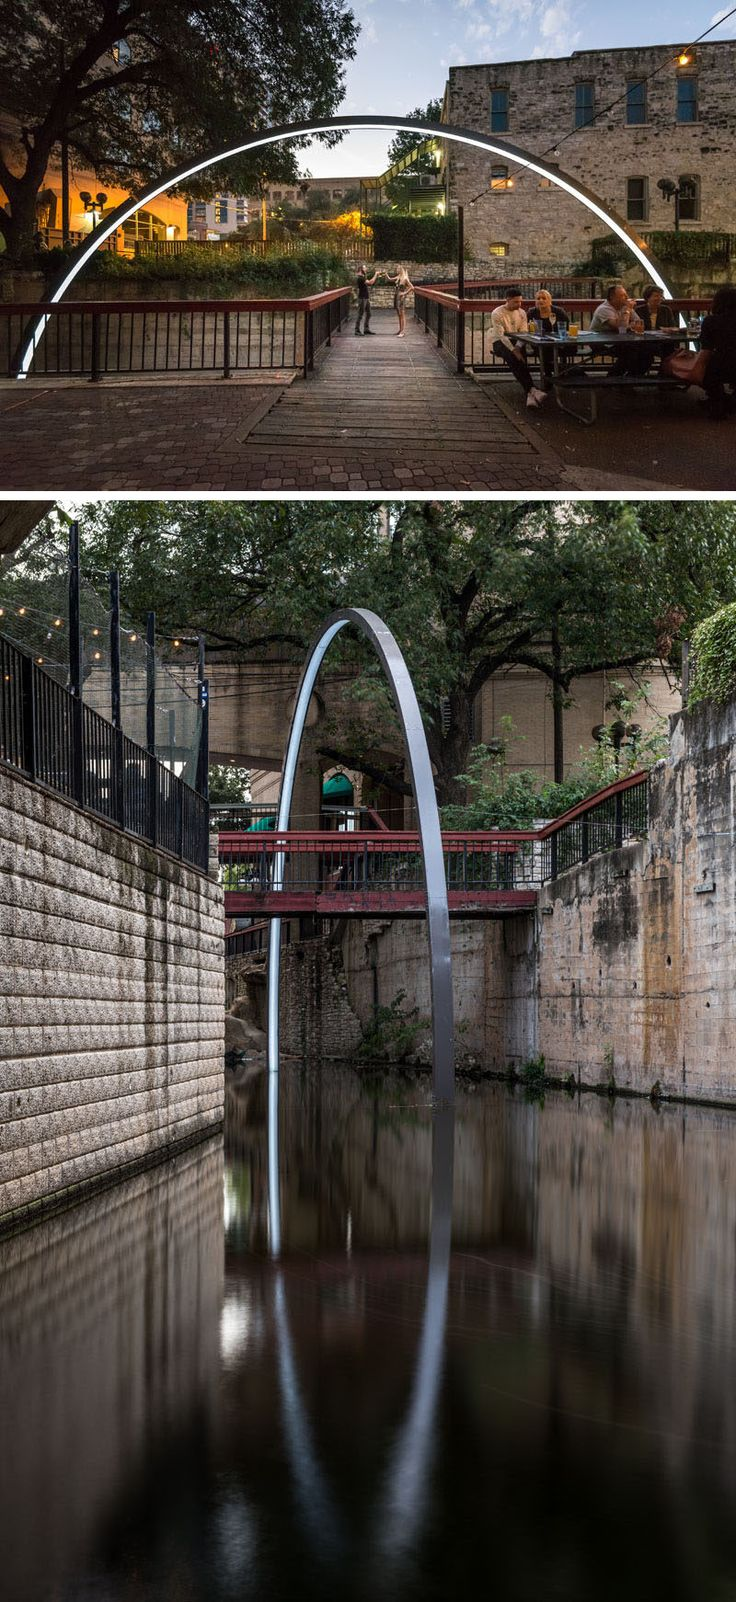 """East Side Collective together with Drophouse Design have designed """"Deep Curiosity, a light art sculpture created as a temporary installation in Texas."""